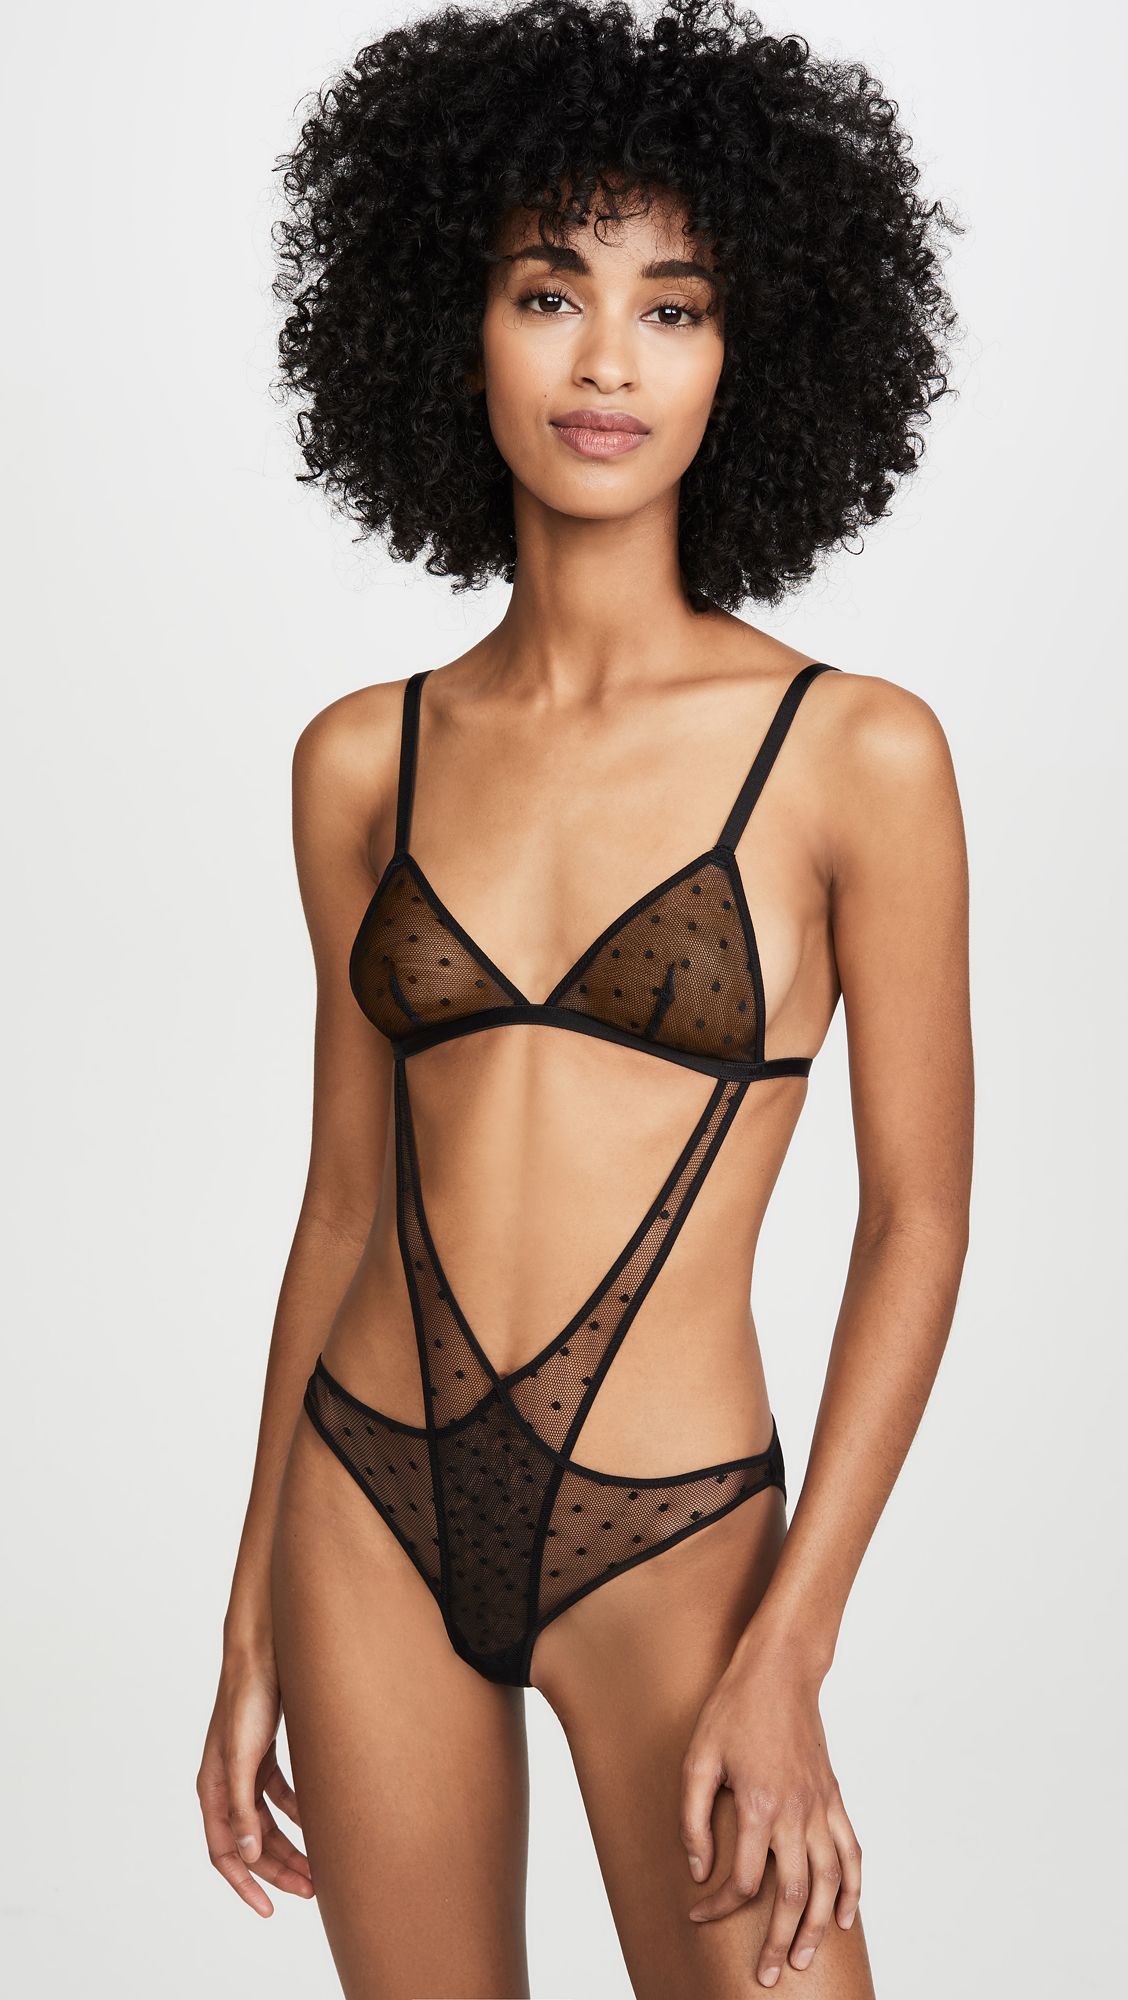 The Lingerie Trends Everyone Should Know About 10